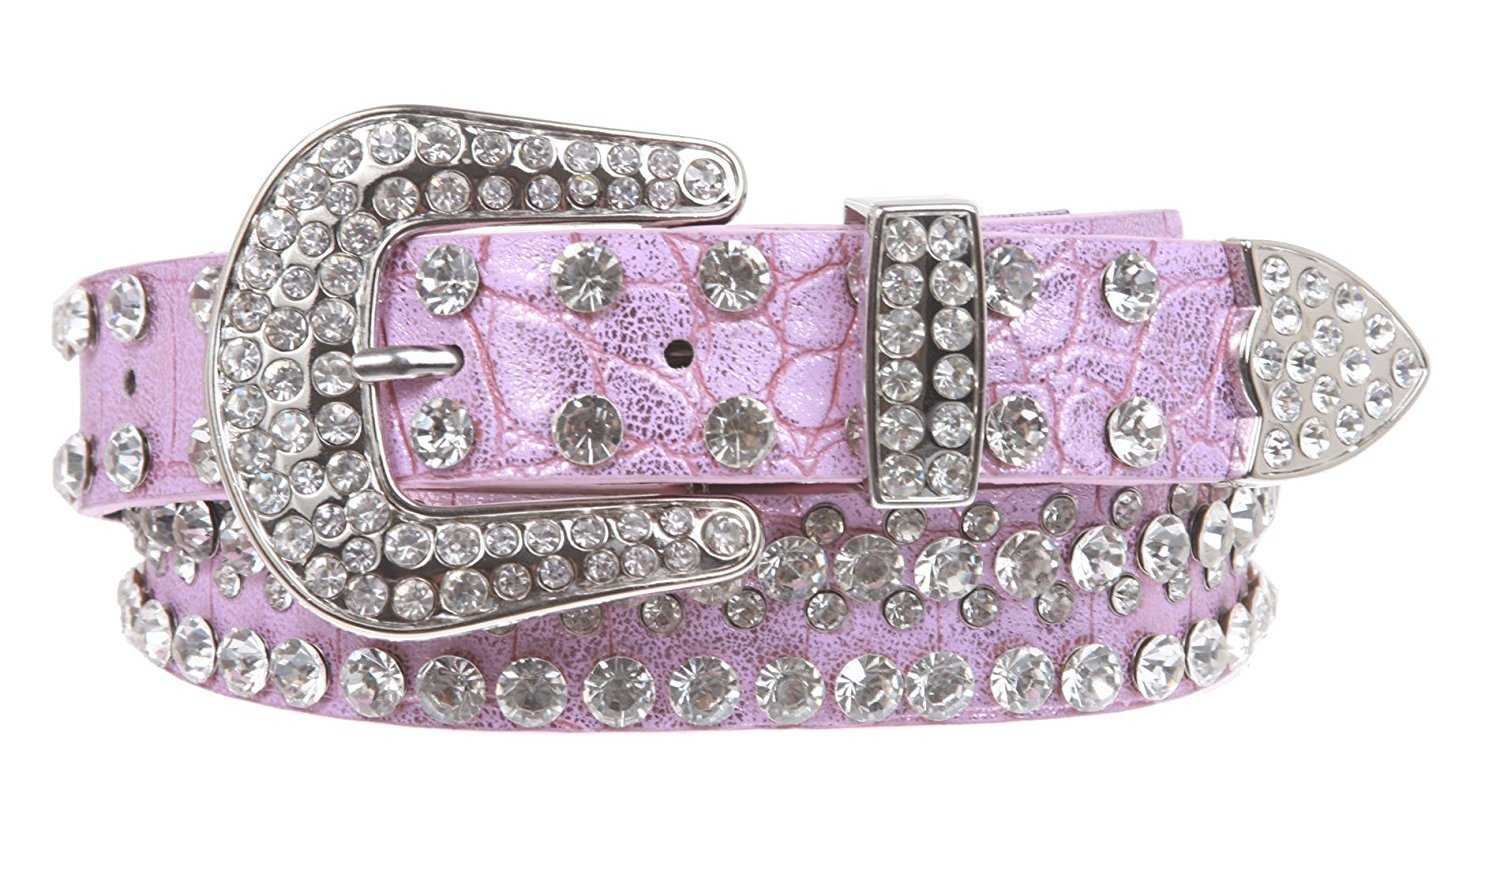 MONIQUE Kids Stylish Western Cowgirl Rhinestone Studded Skinny 27 mm Wide Belt,Pink 24 Inch